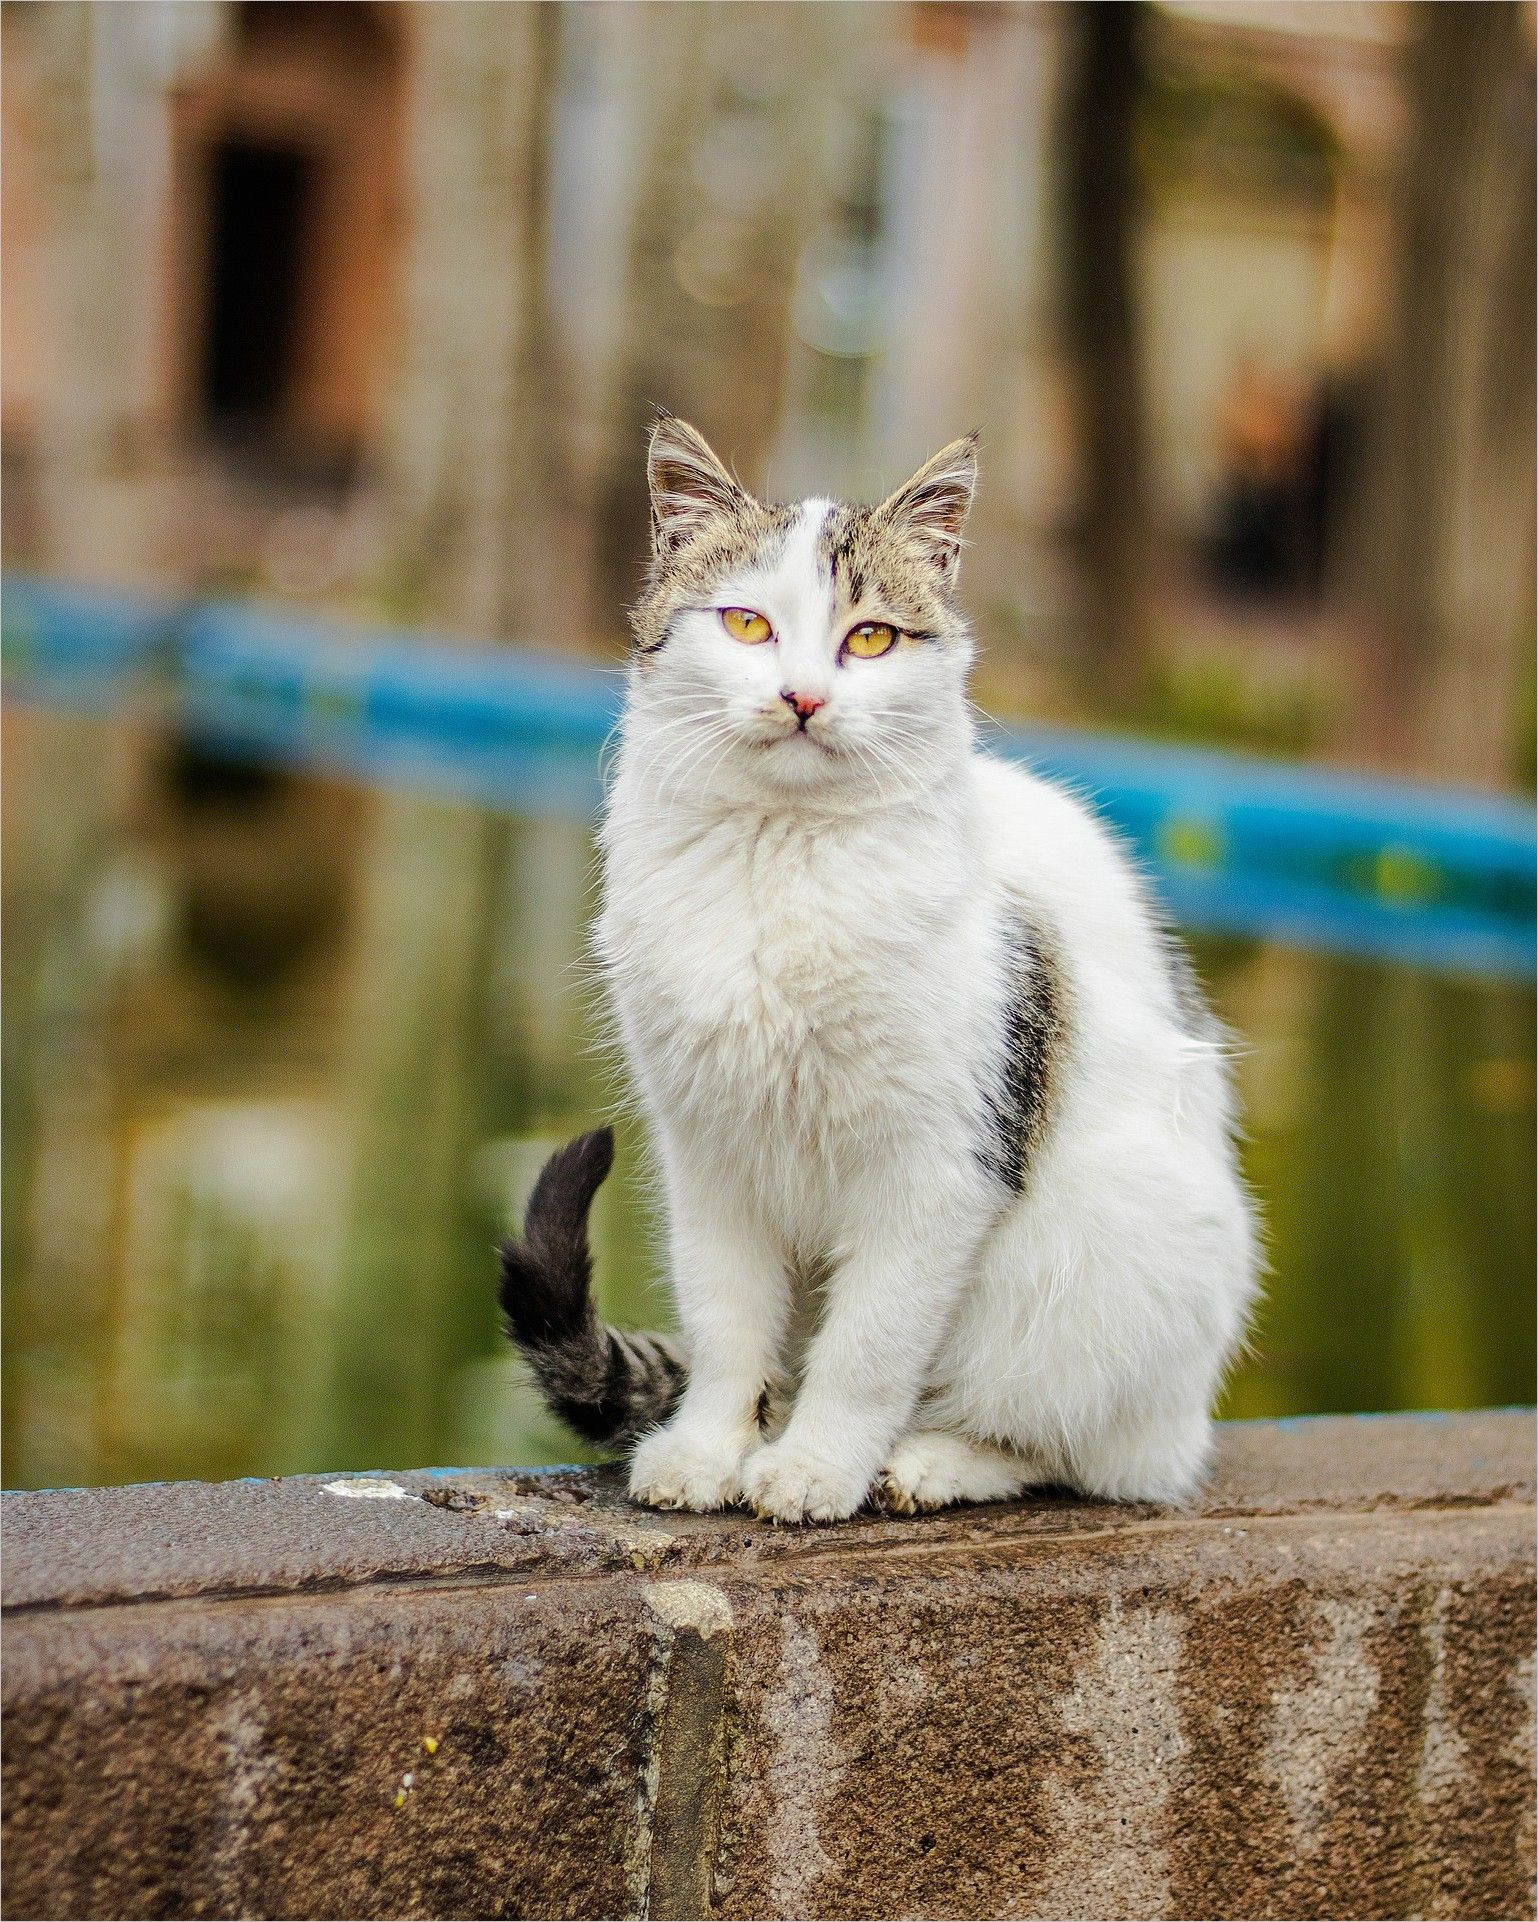 Cat Eyes Image Cat Animal Pet Kitten Cute Nature Eyes